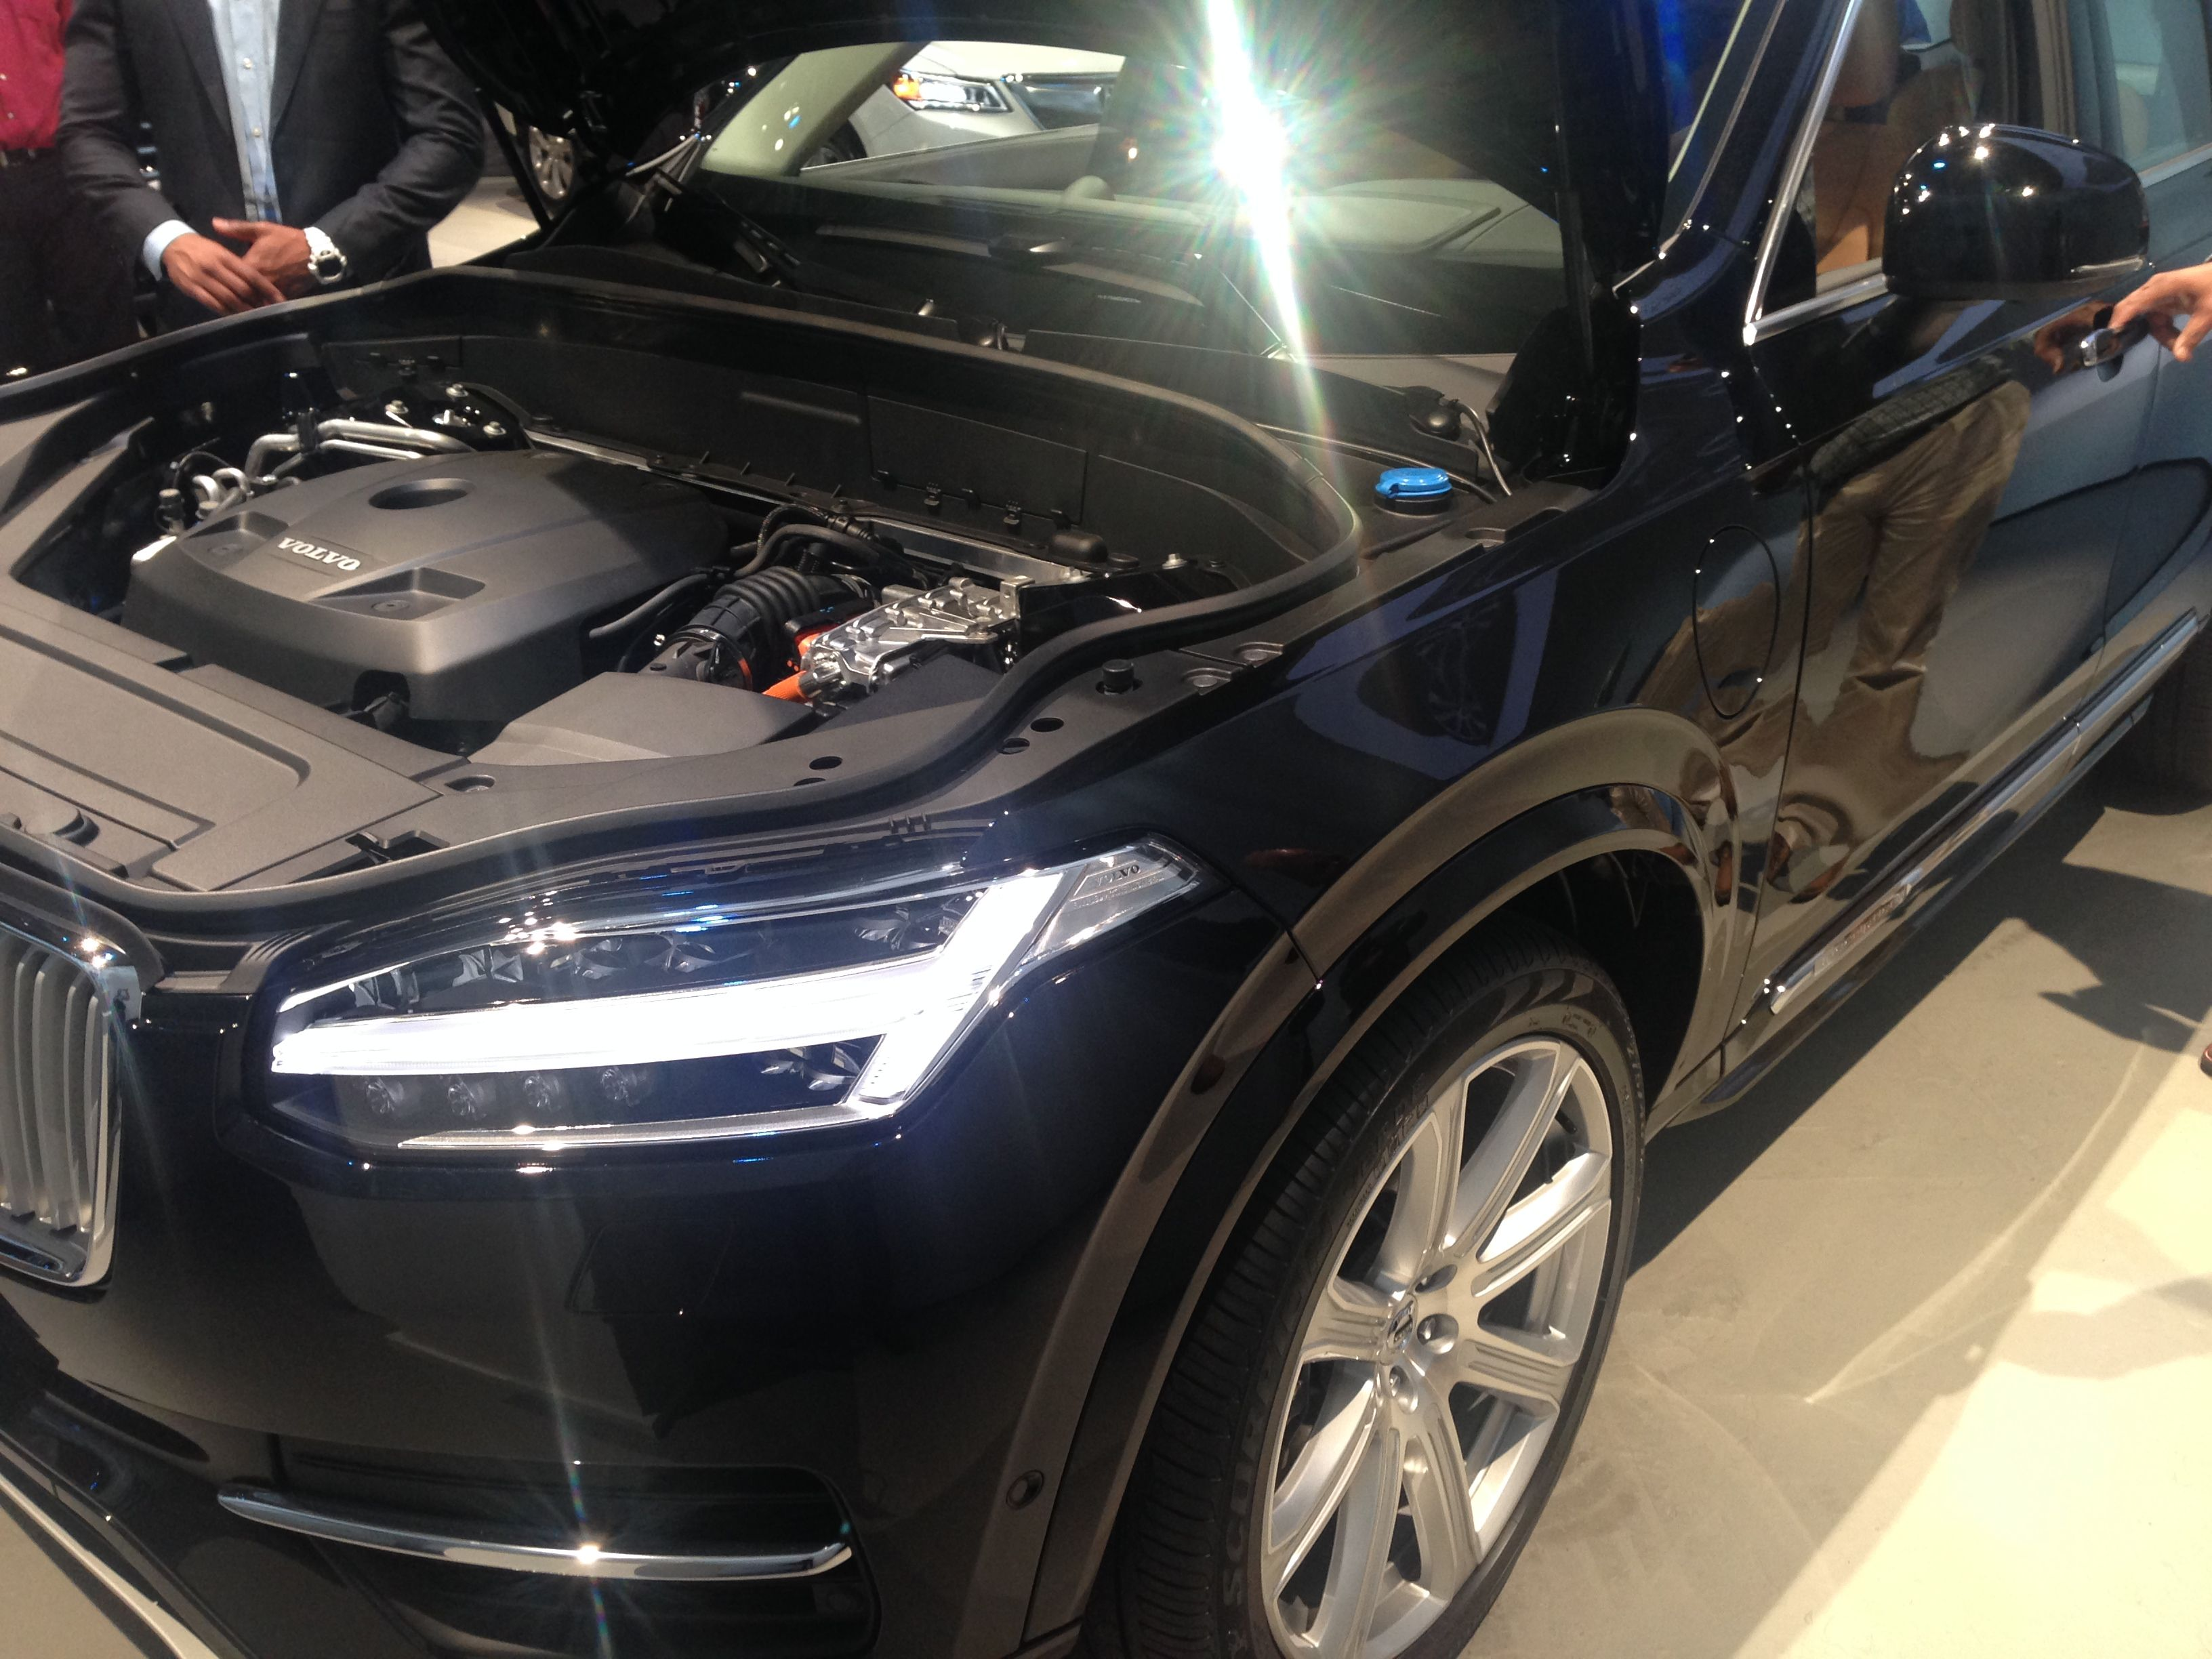 The front end, with the hood up, of the 2016 Volvo XC90